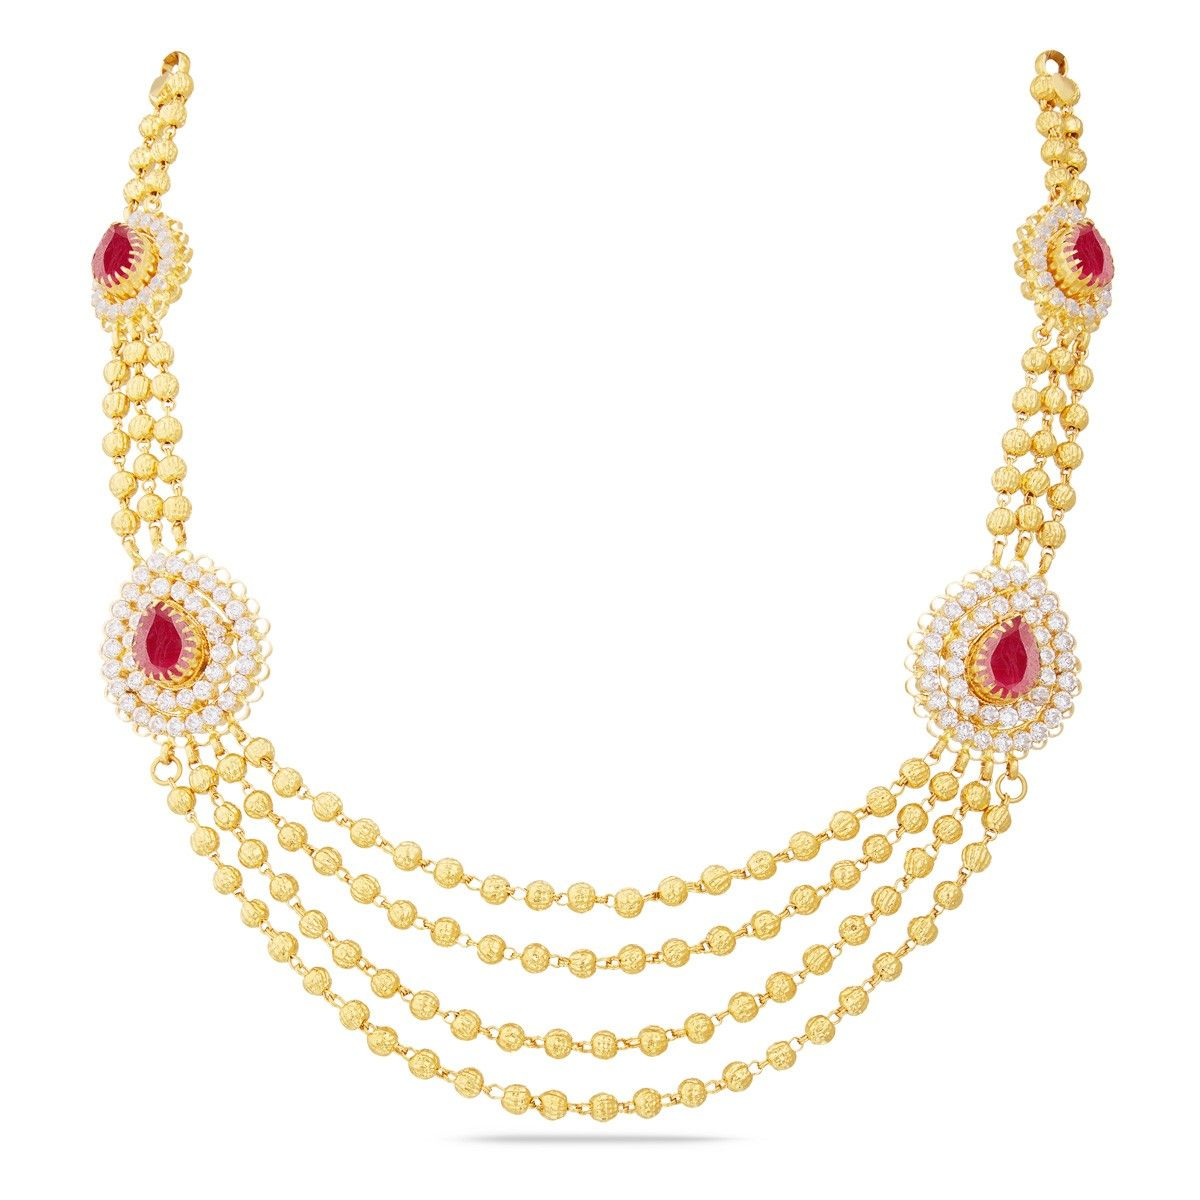 Indian Gold Jewellery Necklace Designs With Price: Gold Necklace Design In 30 Grams With Price